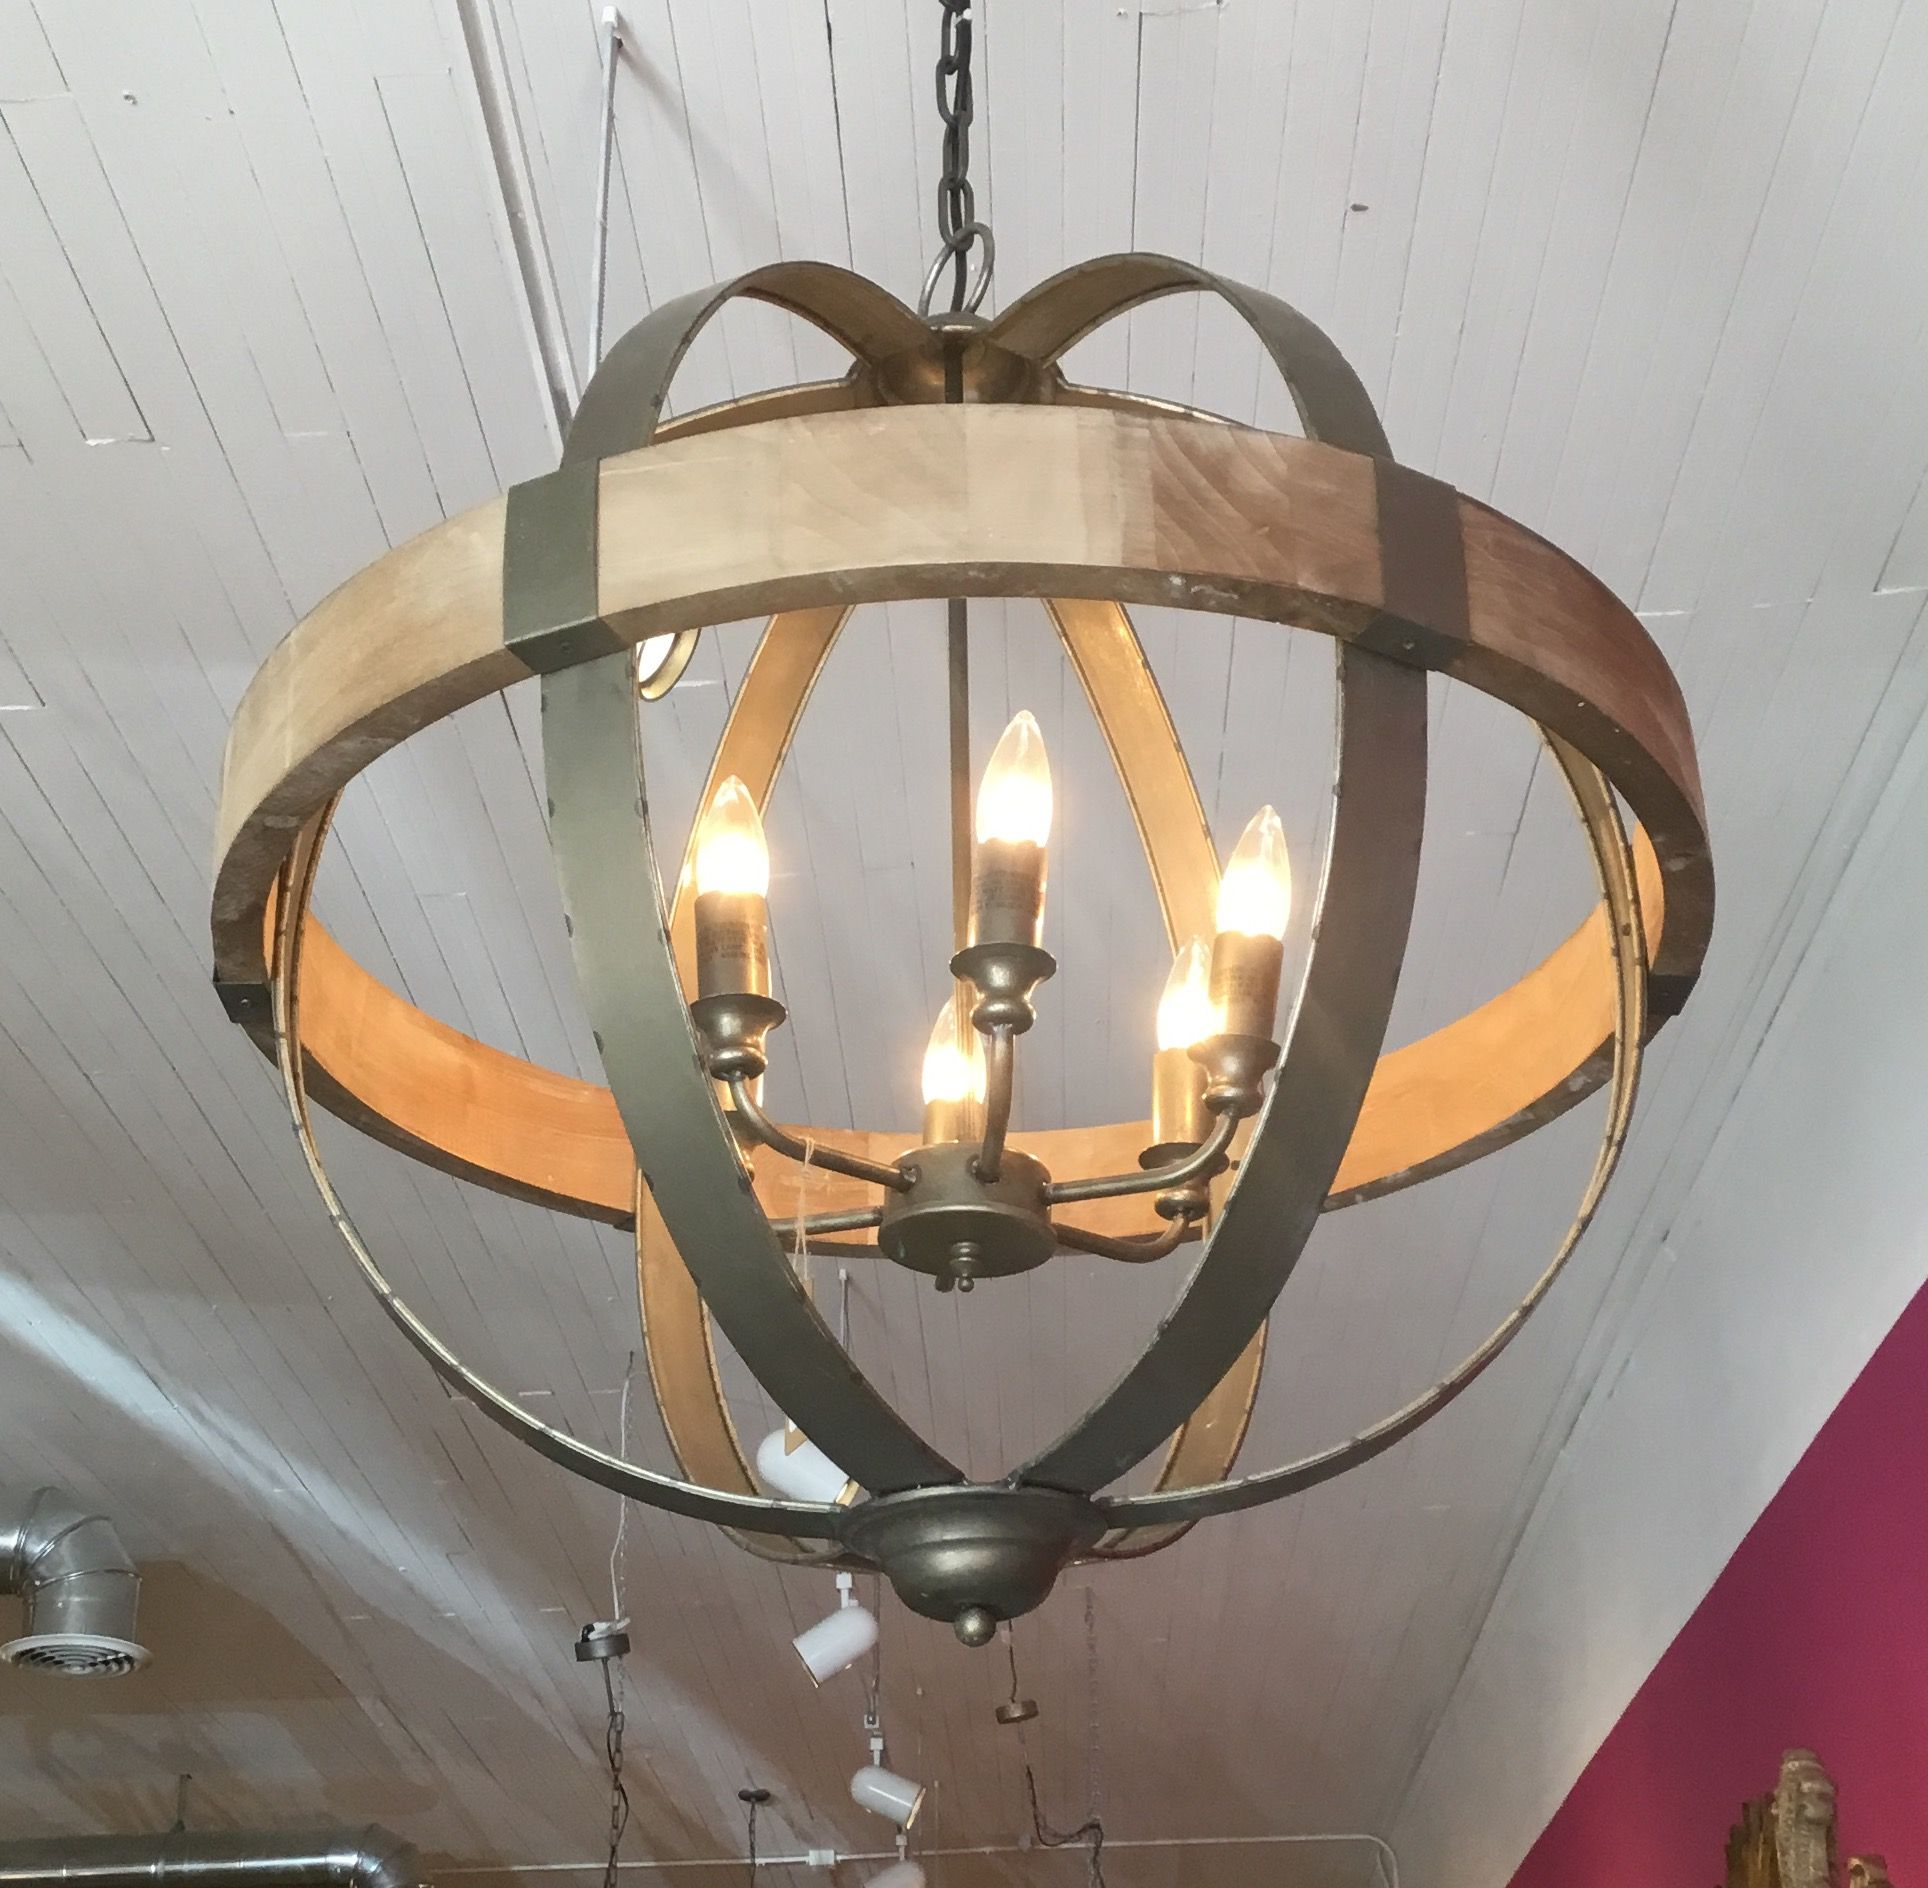 Metal & wood sphere chandelier great for a rustic look